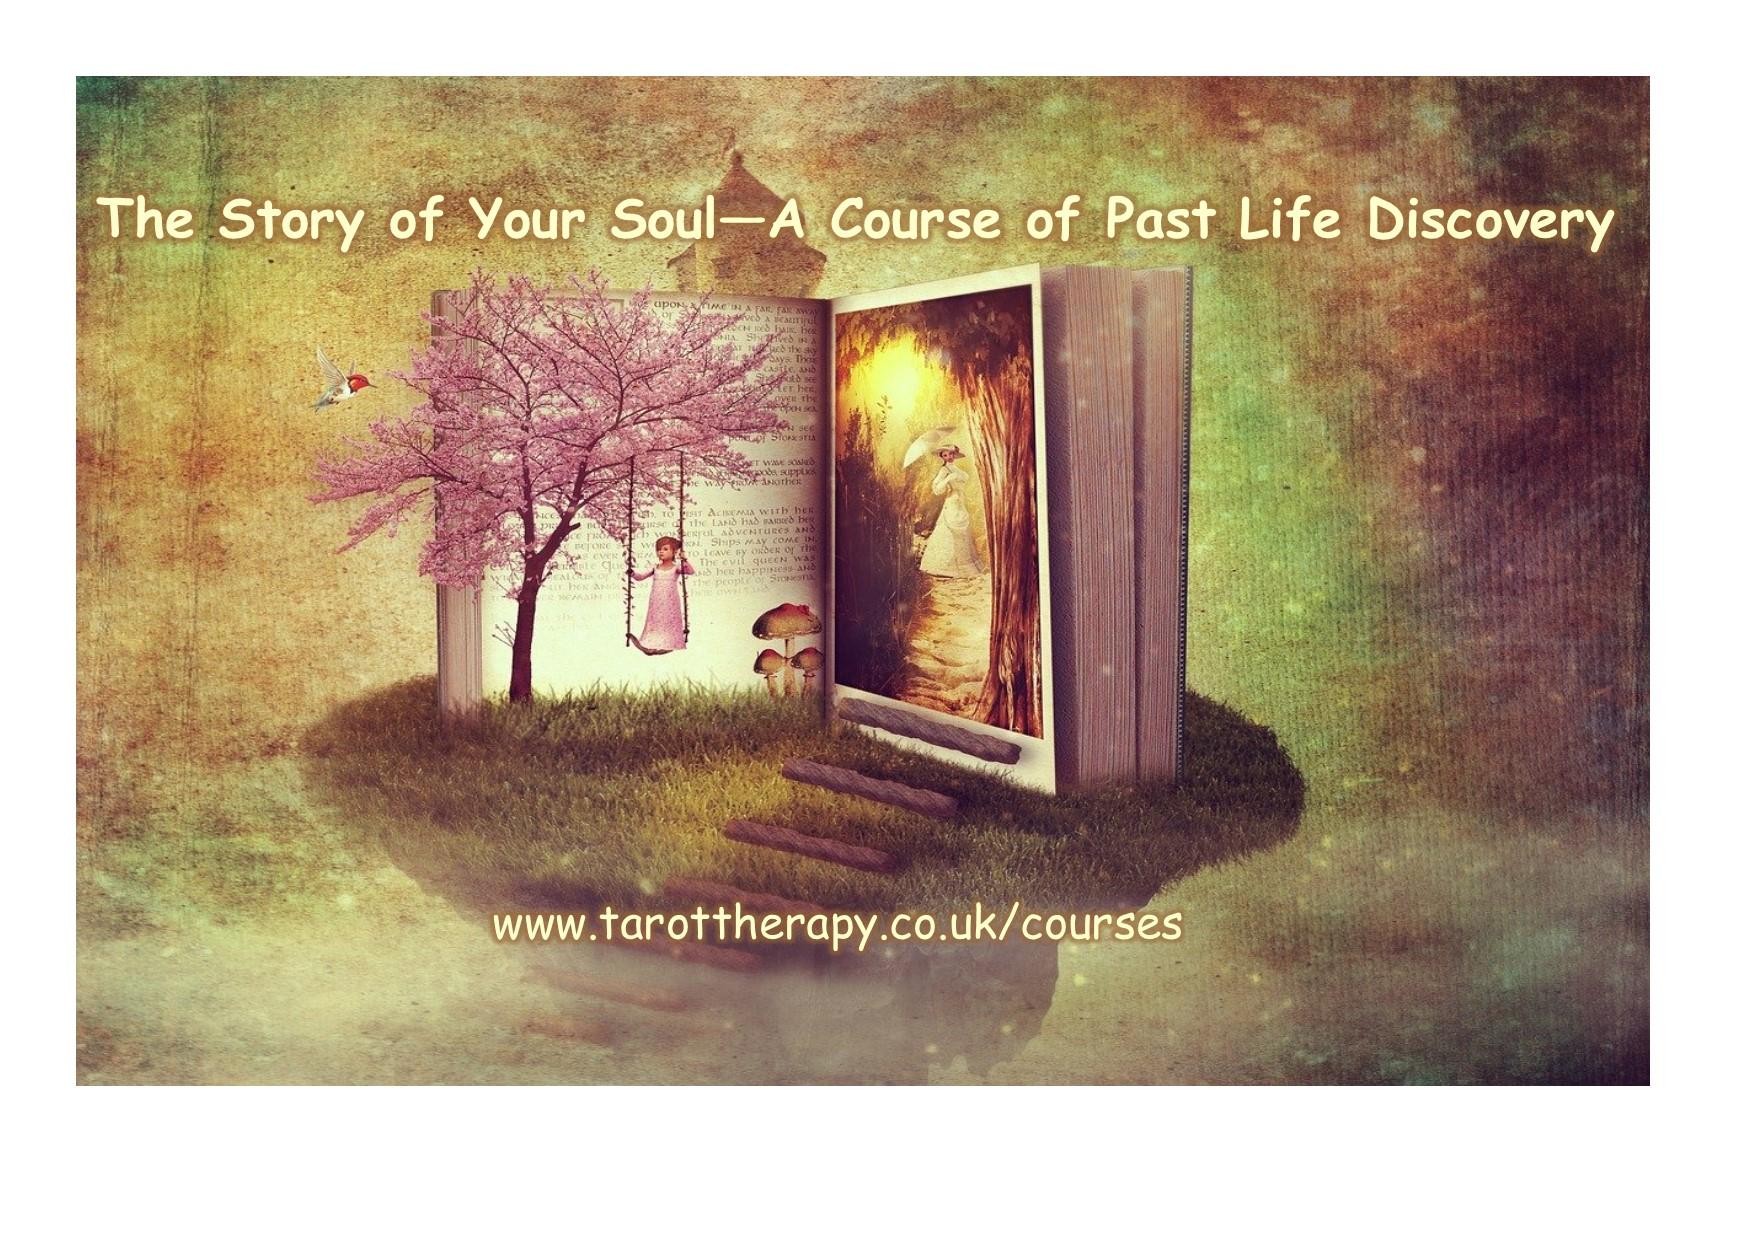 THE STORY OF YOUR SOUL  - A course of Past Life Discovery and Therapy!